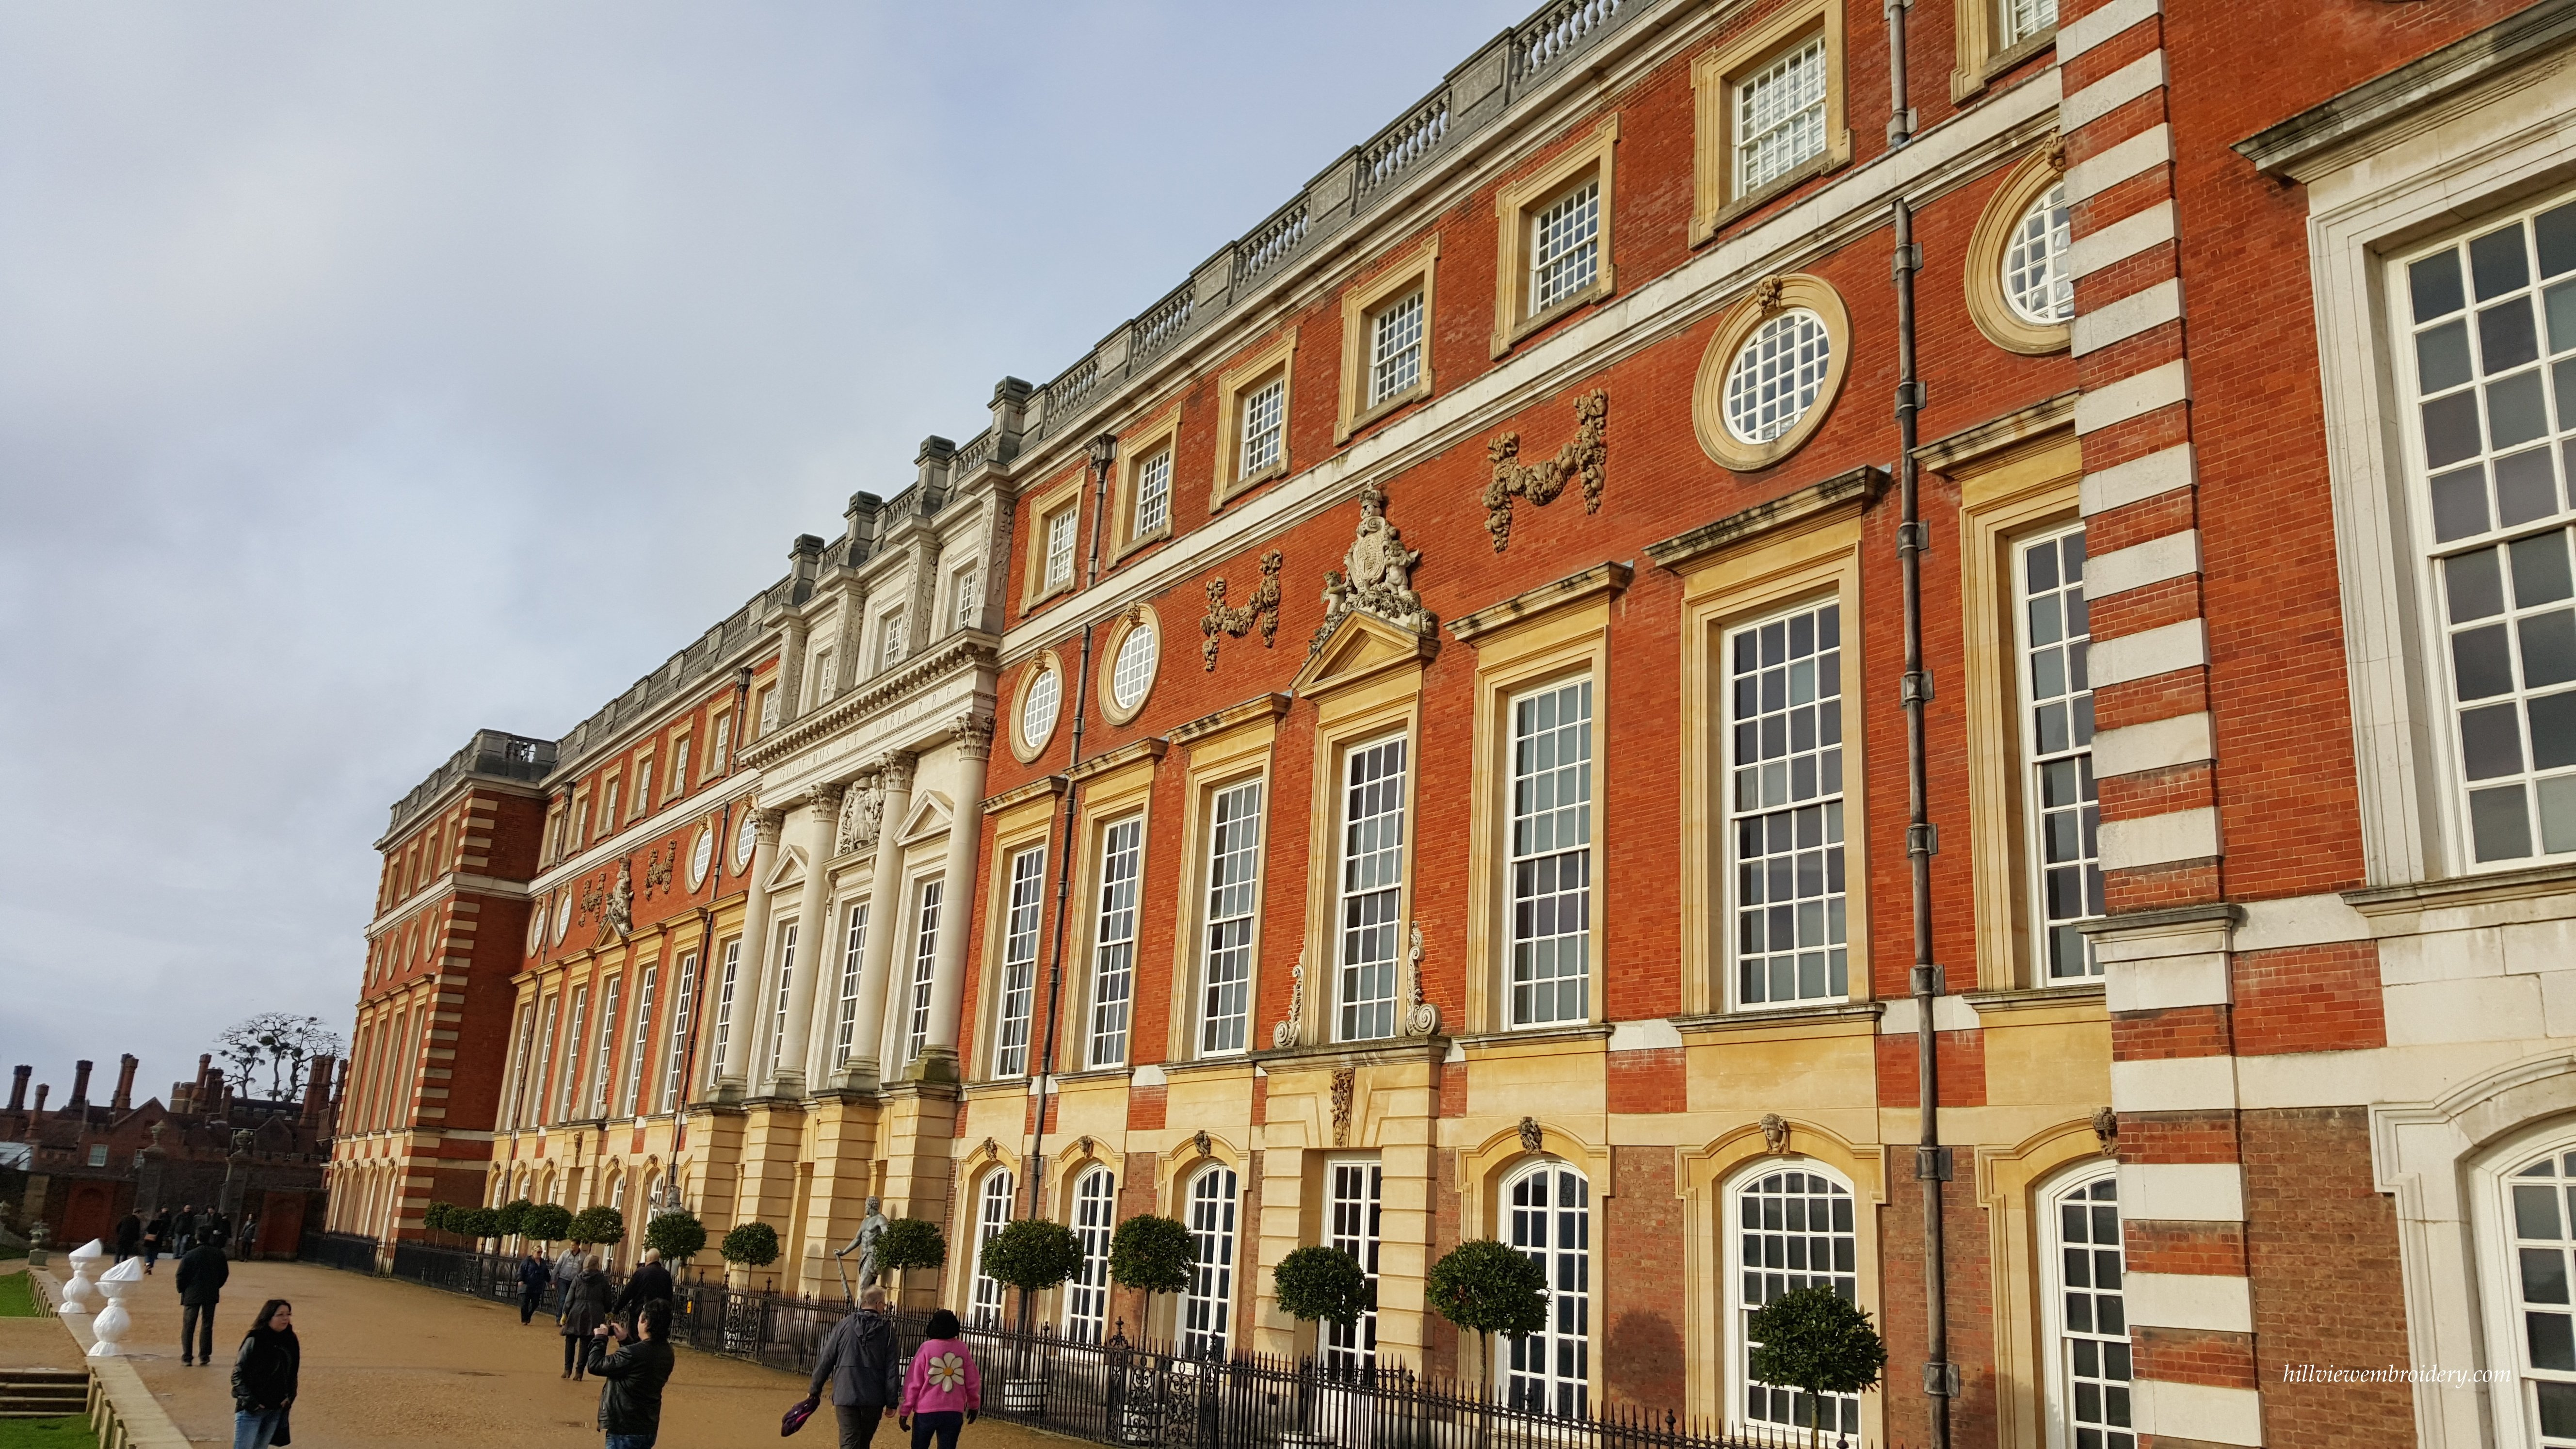 The outside wall of the Palace - our room was on the top floor, behind some of those windows!